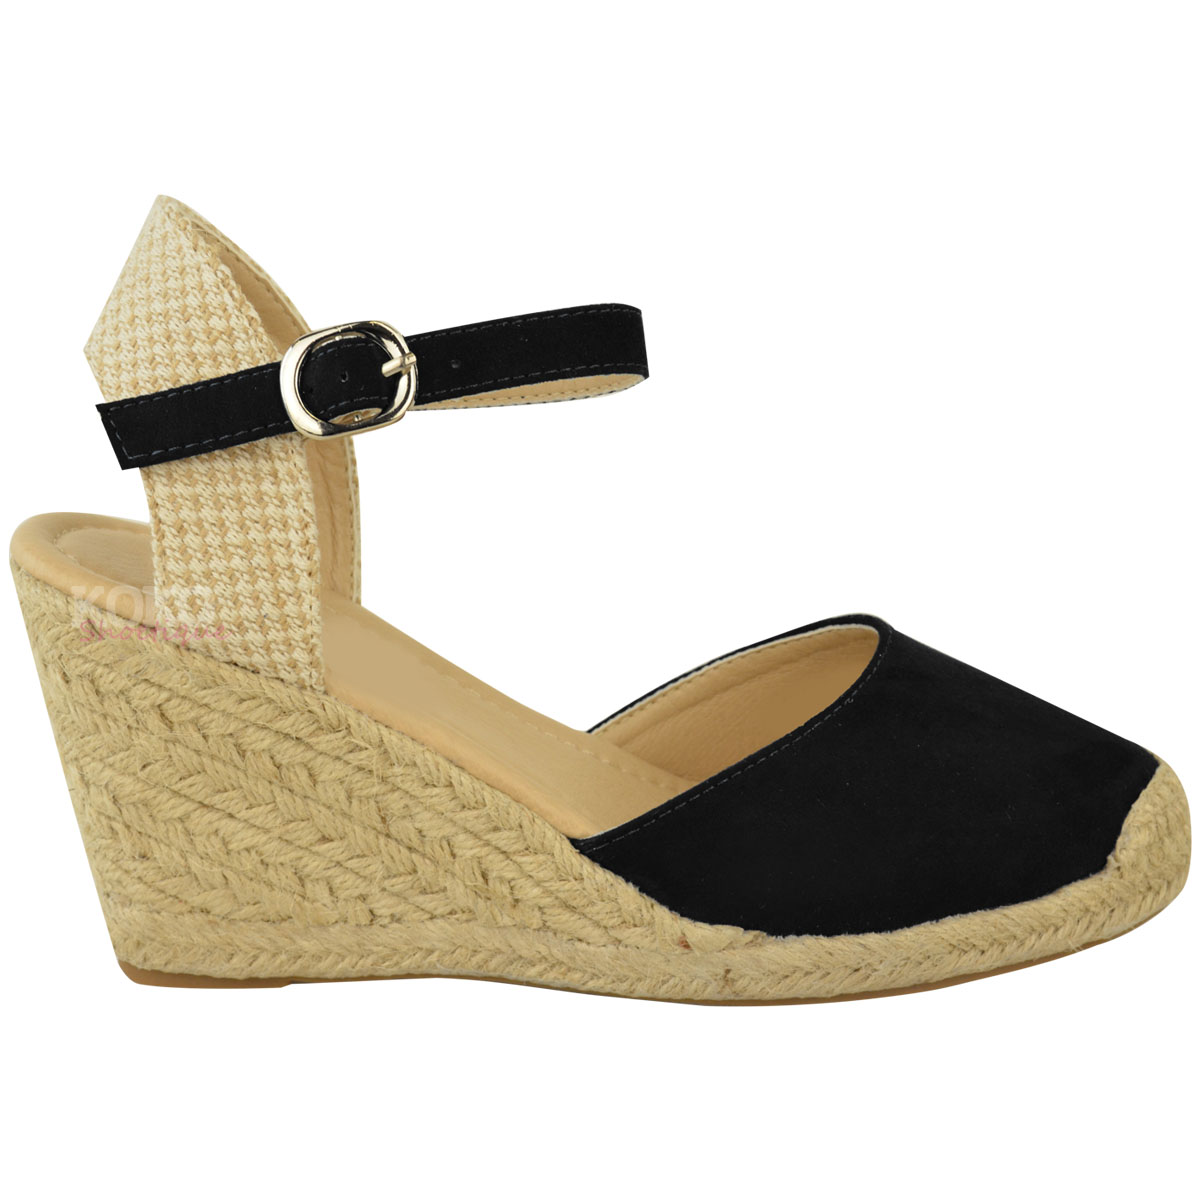 Wedge Shoes. Put your best foot forward with women's wedge shoes from Kohl's. We have all the footwear options you need to complete any look! We have all the colors of wedges that coordinate with any outfit, including red wedges and blue wedges.